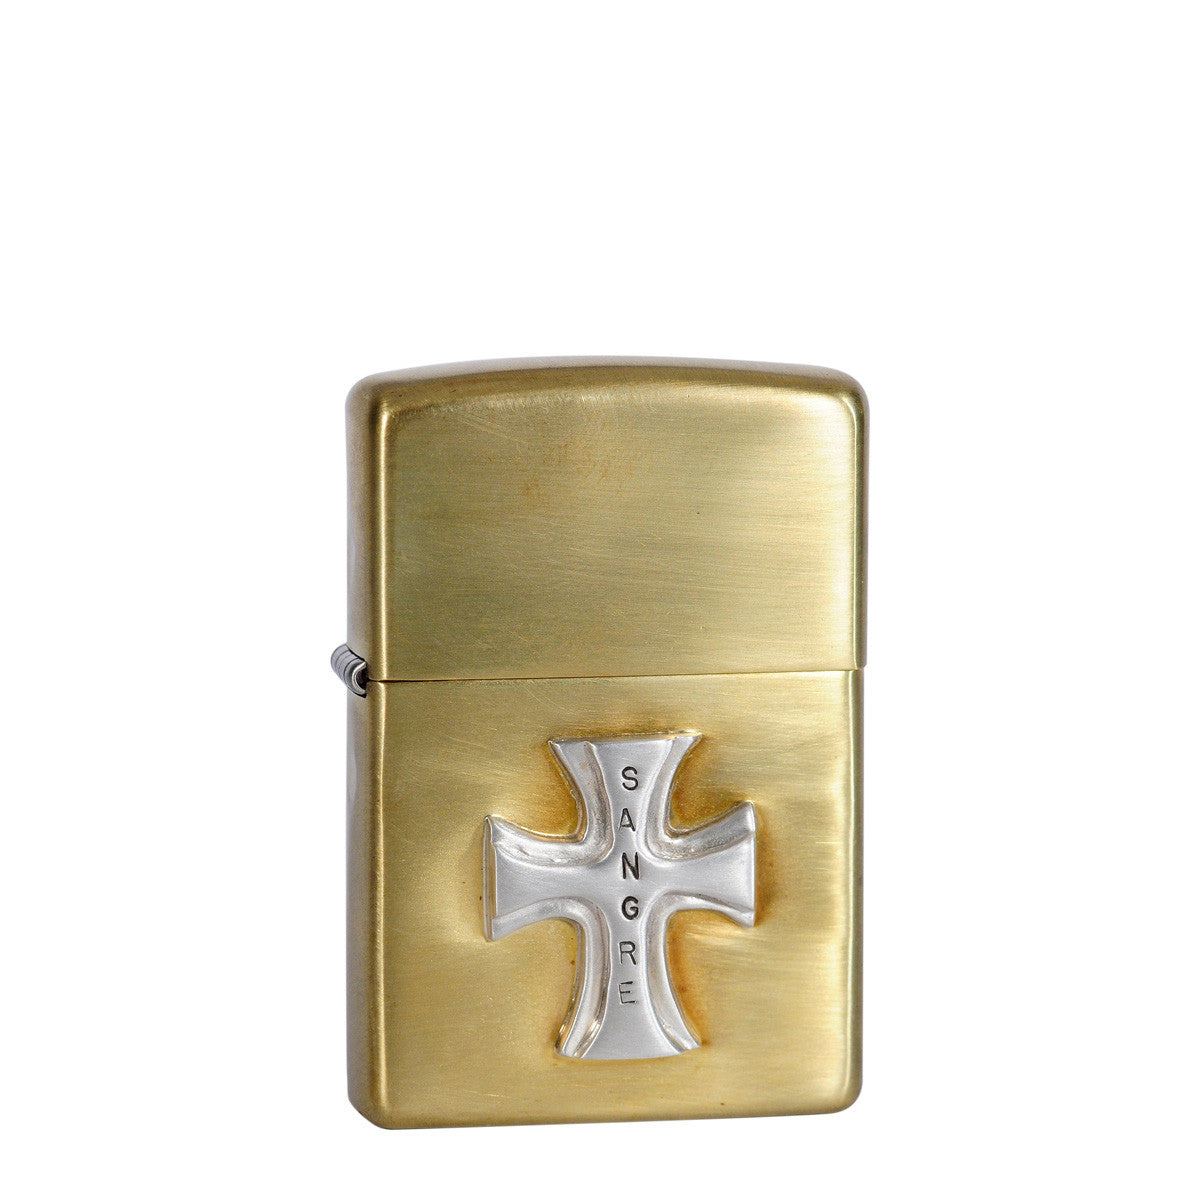 Sangre Cross Lighter